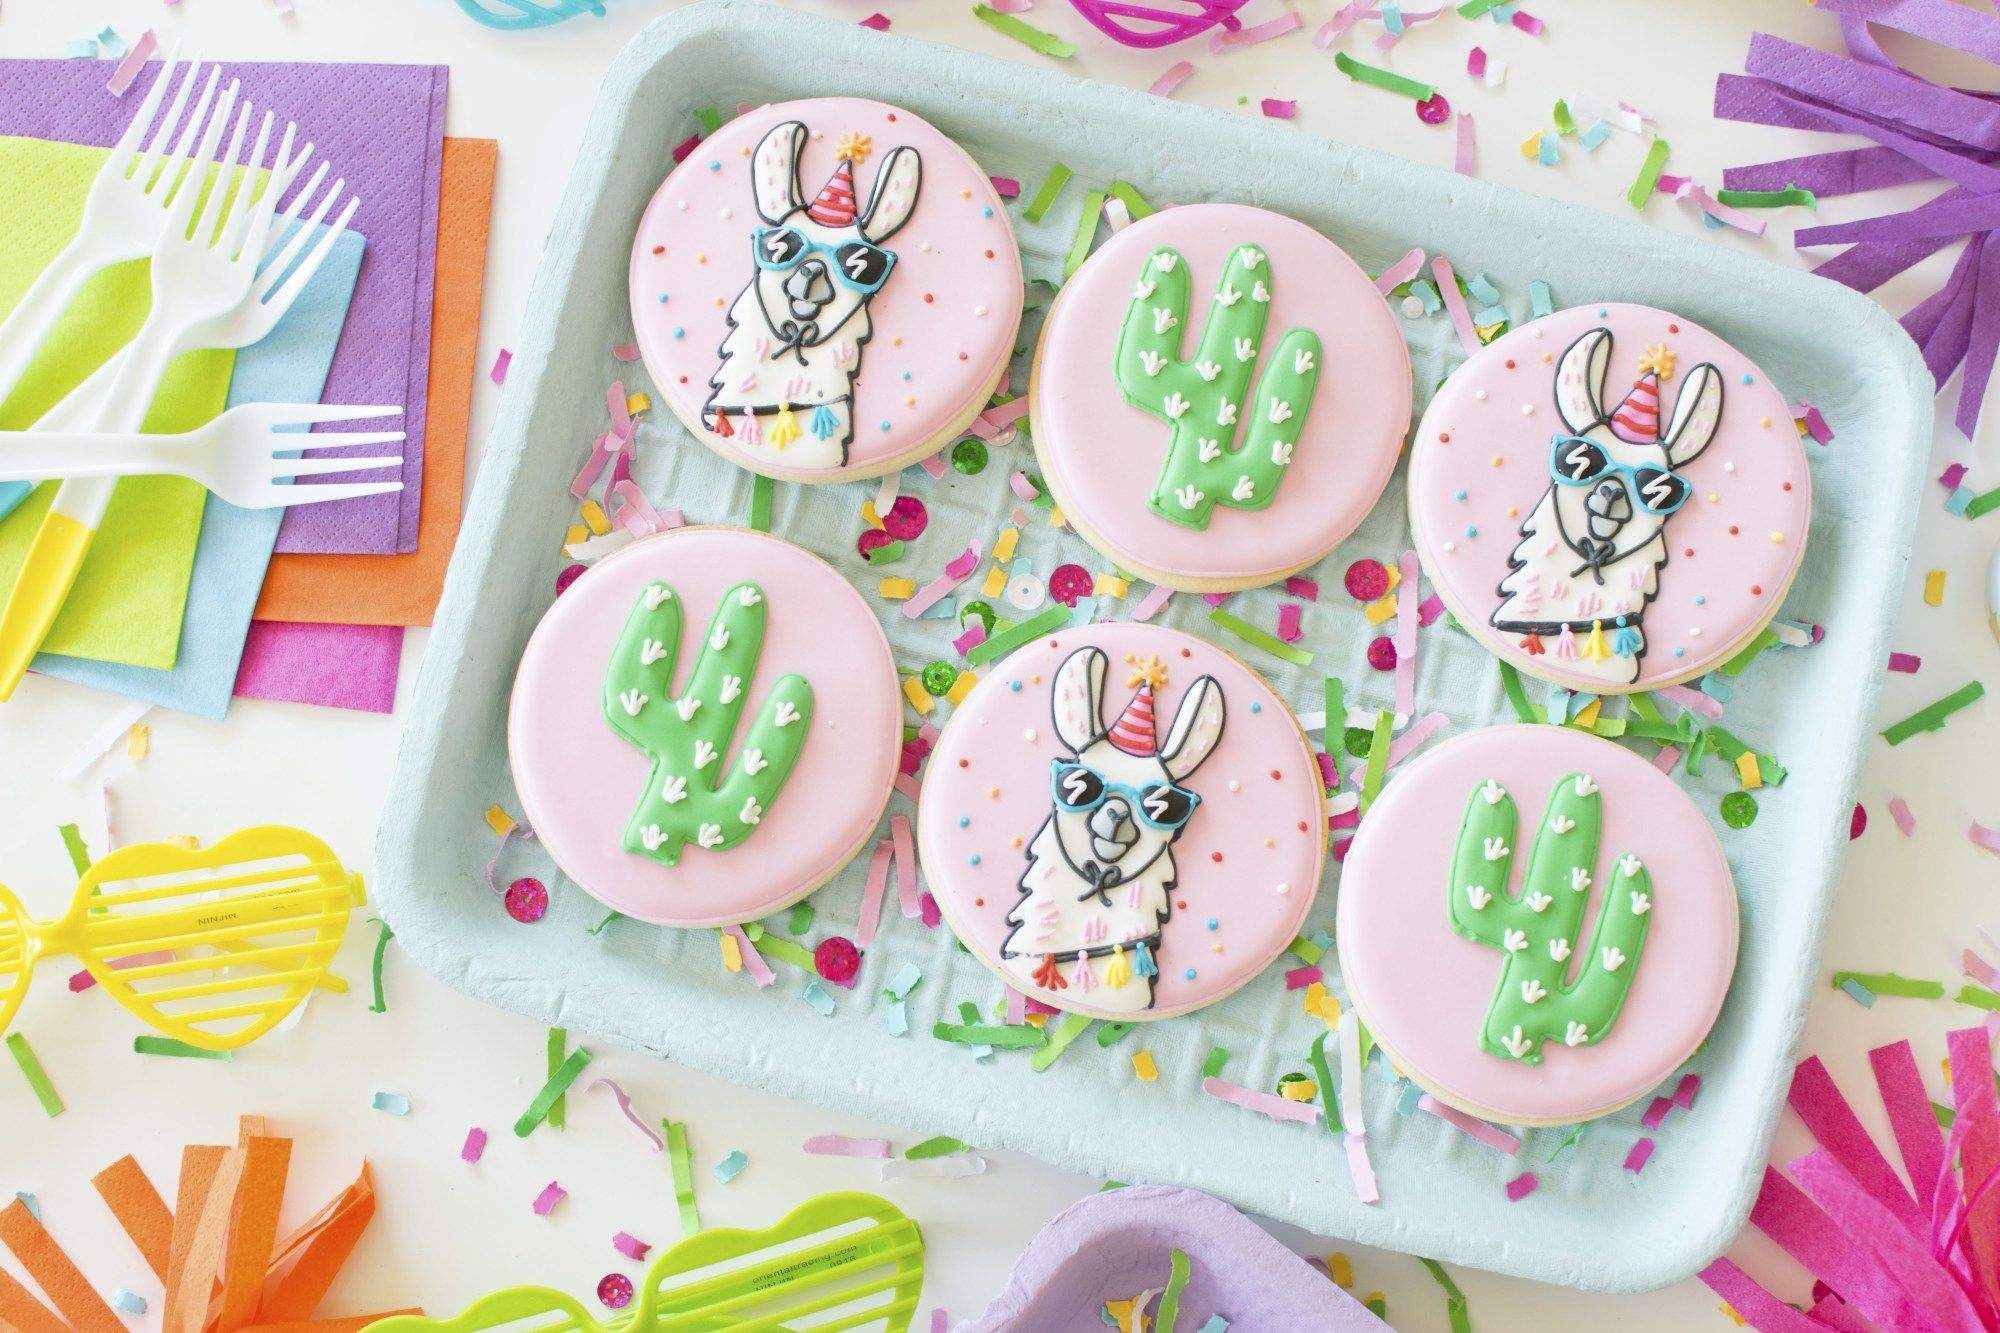 How To Throw A Colorful Llama Party Decorated Cookies Inspired By Target Collection